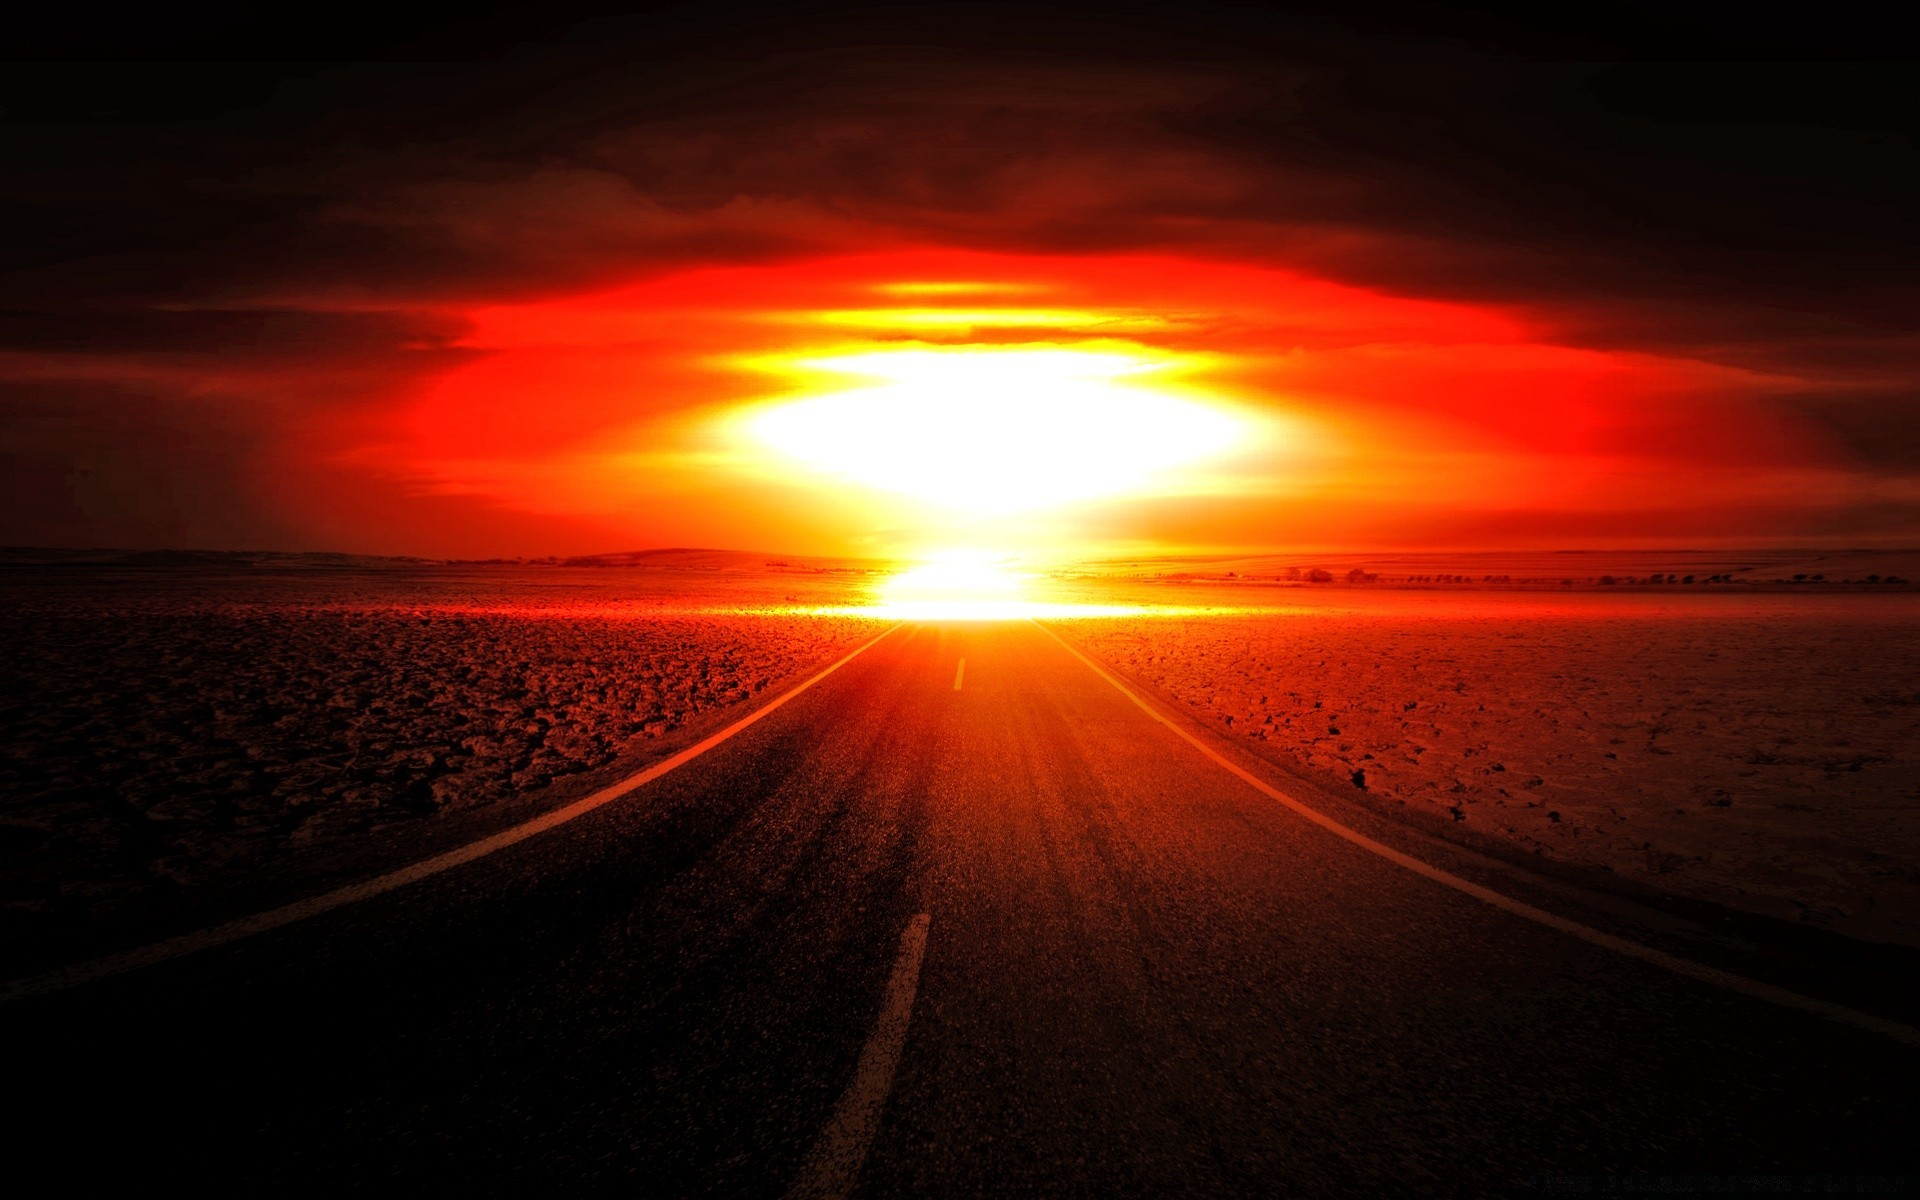 Nuclear explosion android wallpapers - Explosion wallpaper ...